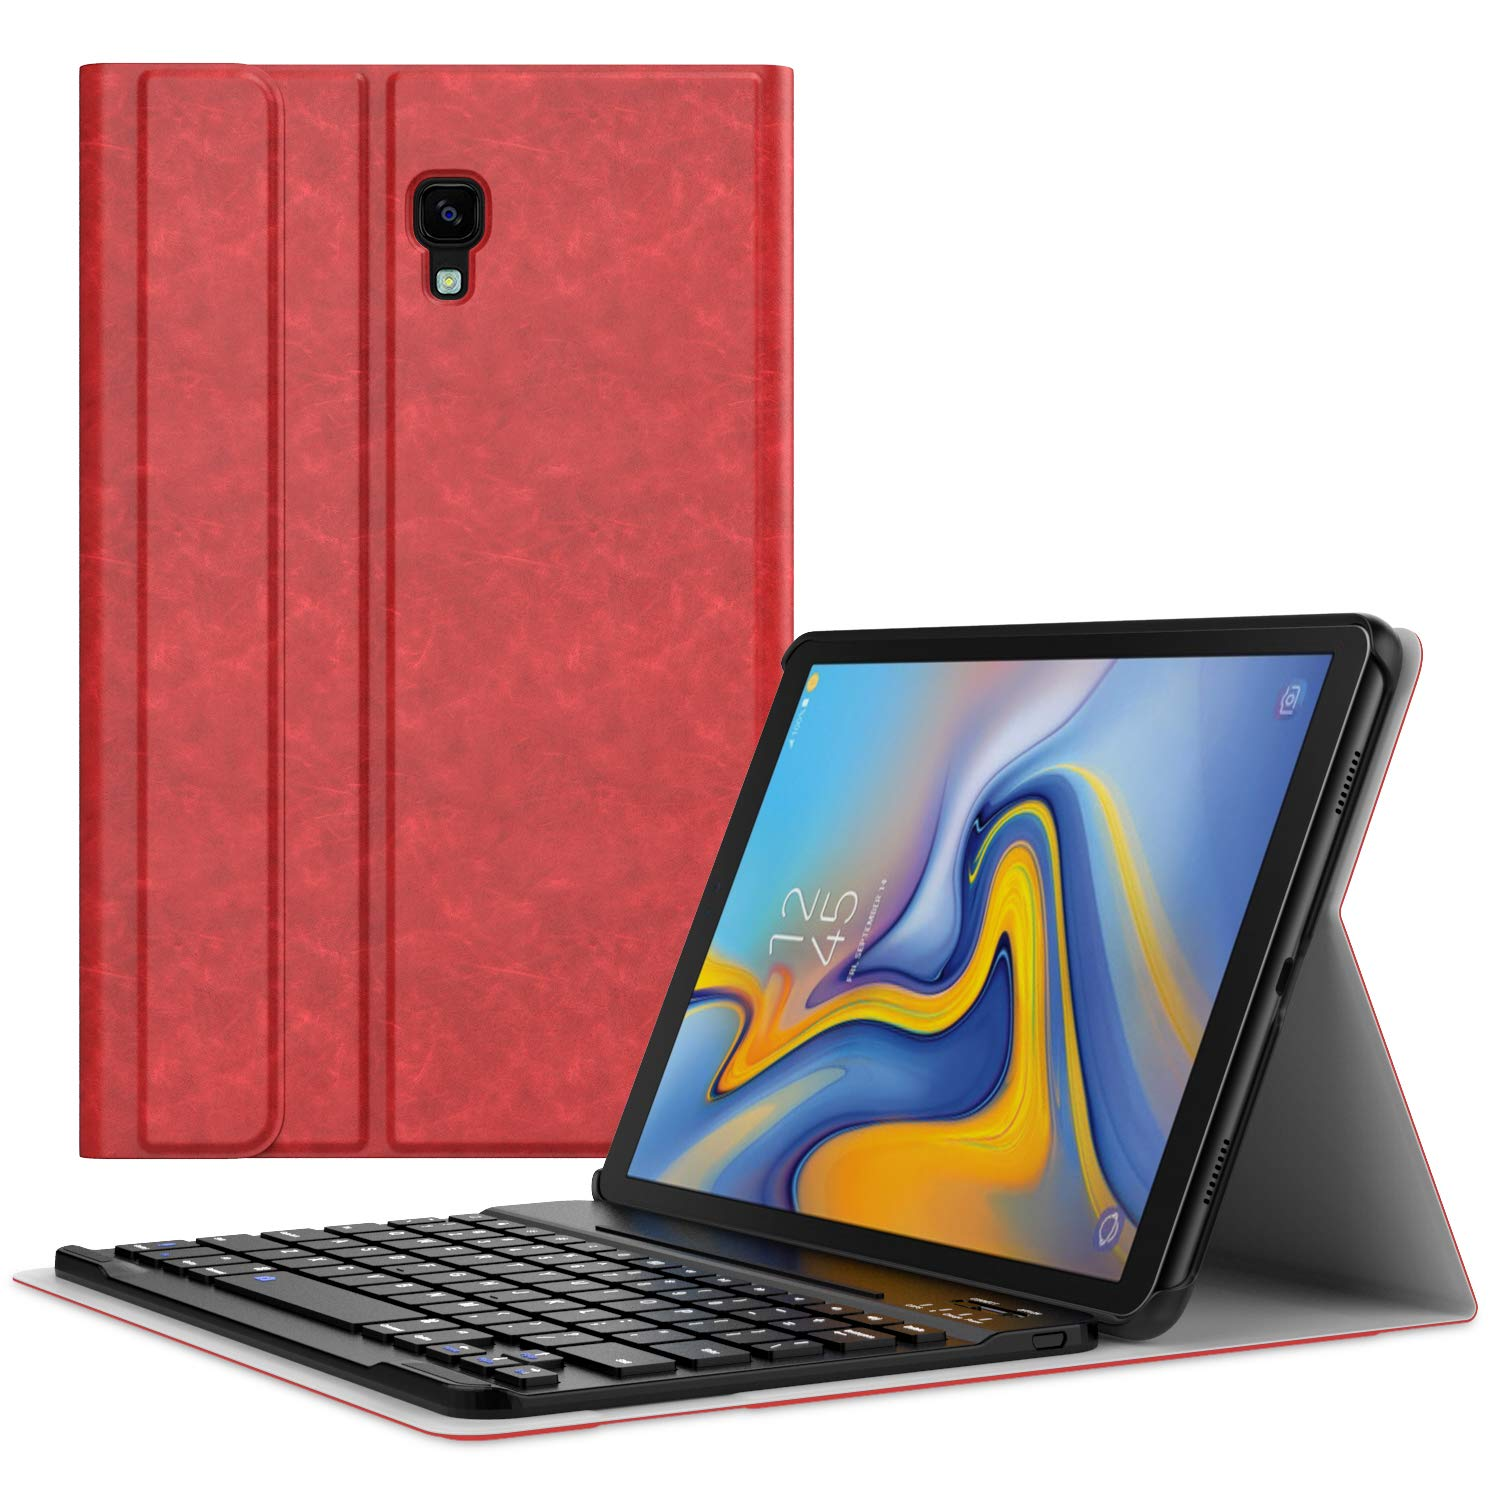 MoKo Keyboard Case for Samsung Galaxy Tab A 10.5, Ultra-Slim Detachable Wireless Bluetooth Keyboard Stand Cover for Galaxy Tab A 10.5 Inch (SM-T590 and SM-T595) 2018 Release Tablet - Starry Night PartialUpdate